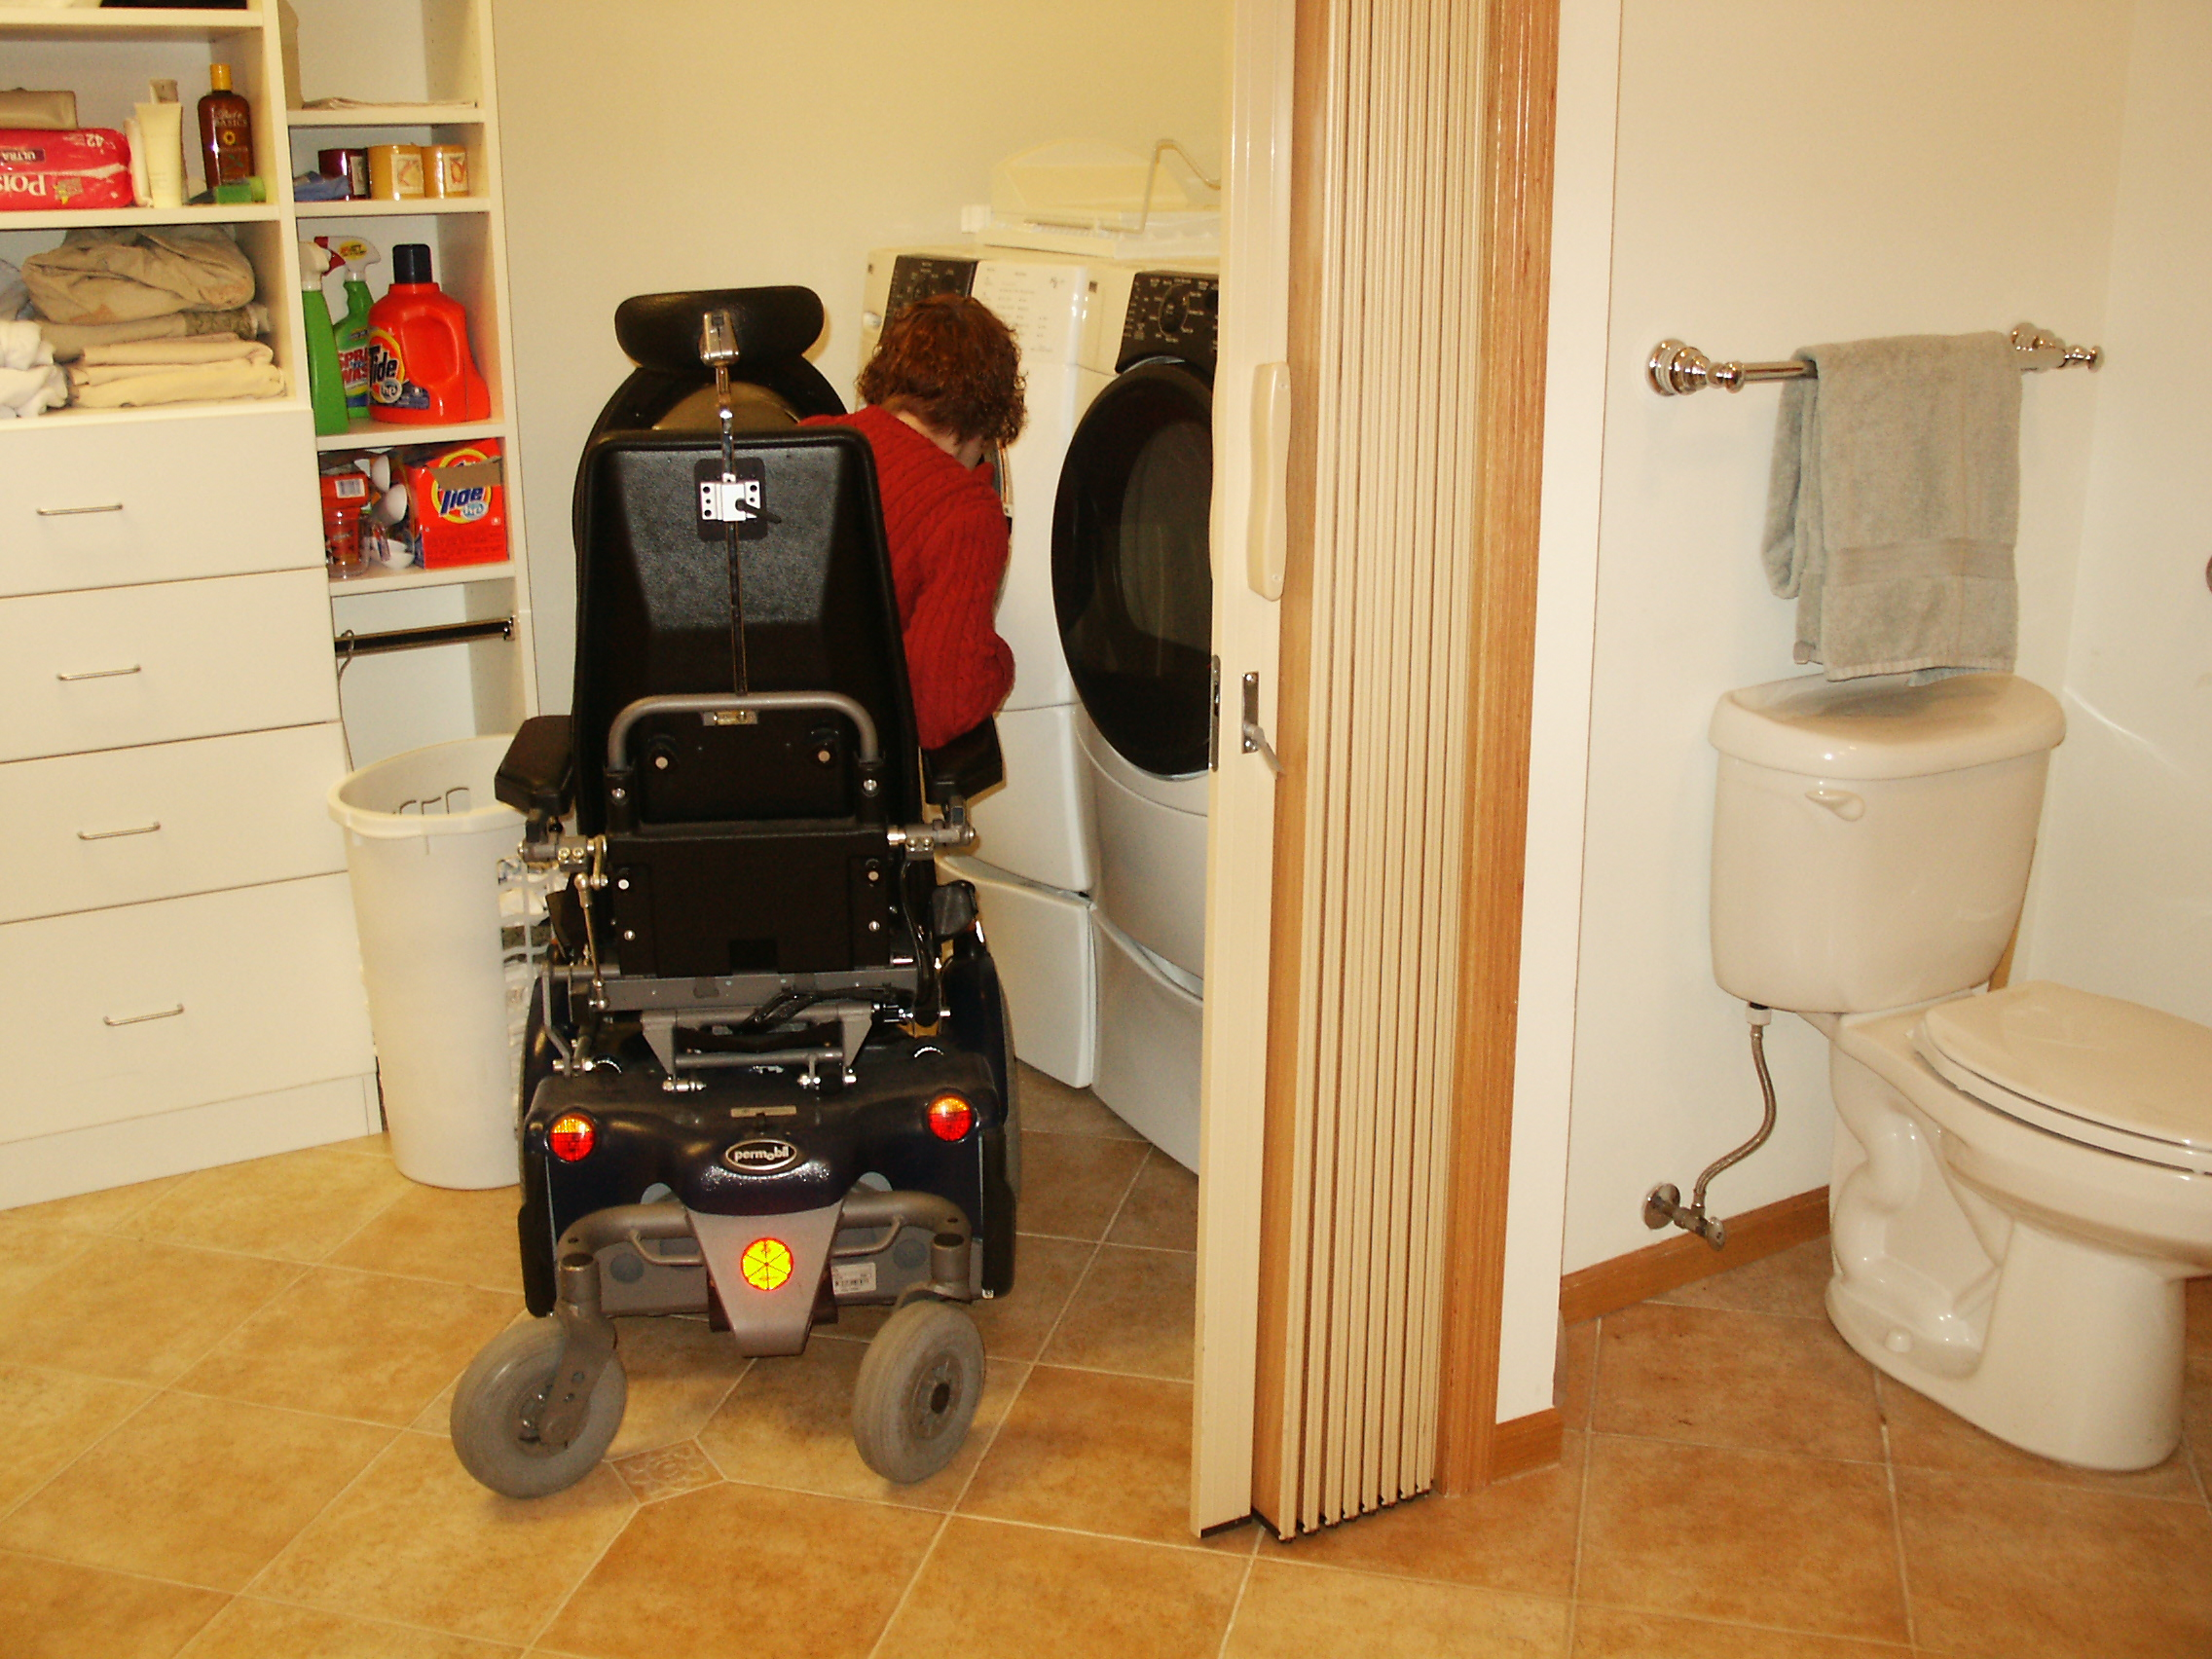 Michelle's new laundry room off her new accessible bathroom. Michelle can operate her washer and dryer while in a seated position in her wheelchair.